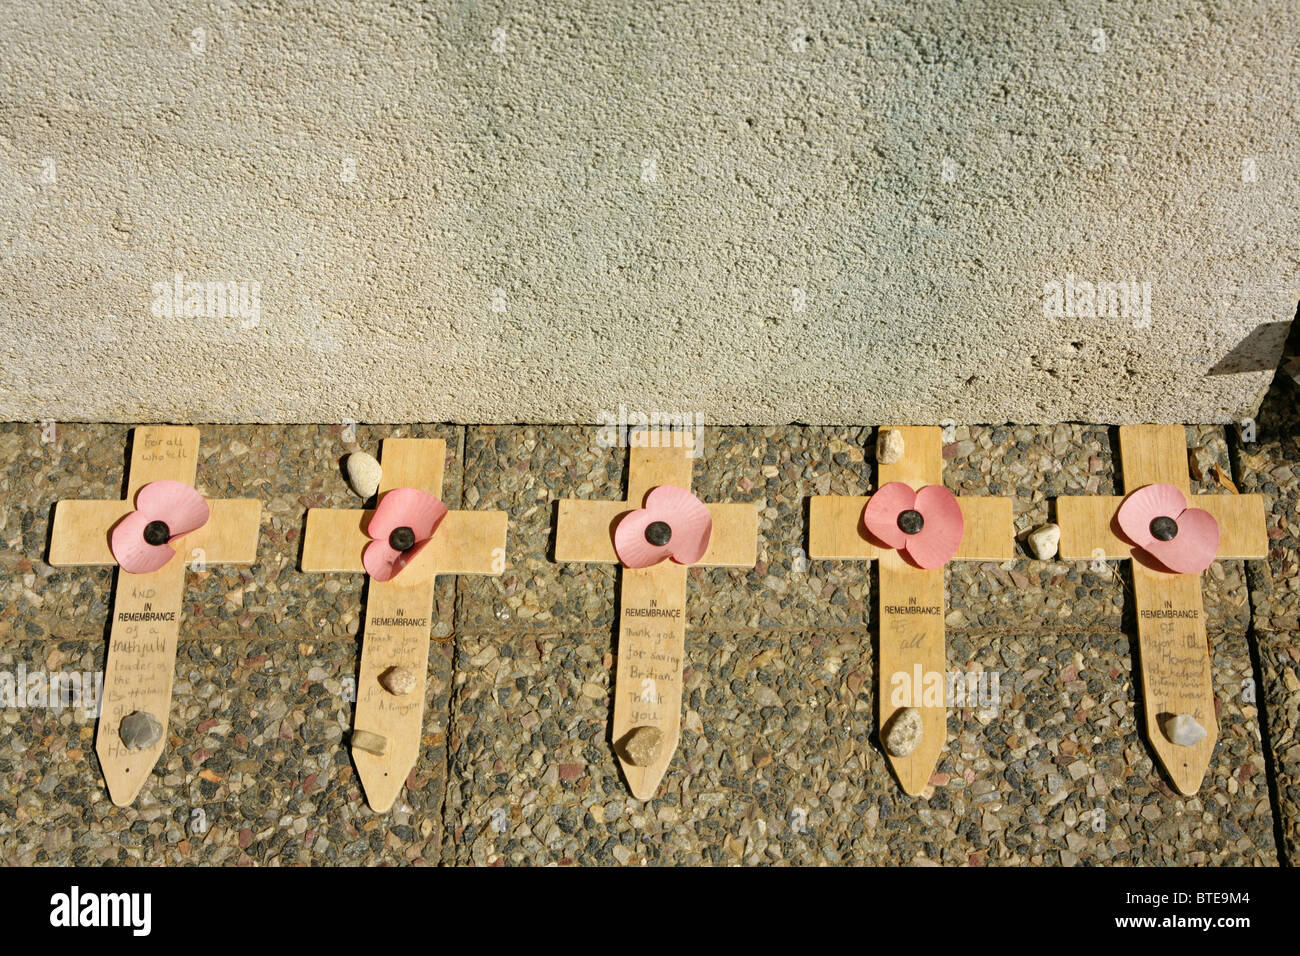 Row of five Remembrance Day poppies and crosses at Pegasus Bridge, over the Caen Canal, France. - Stock Image